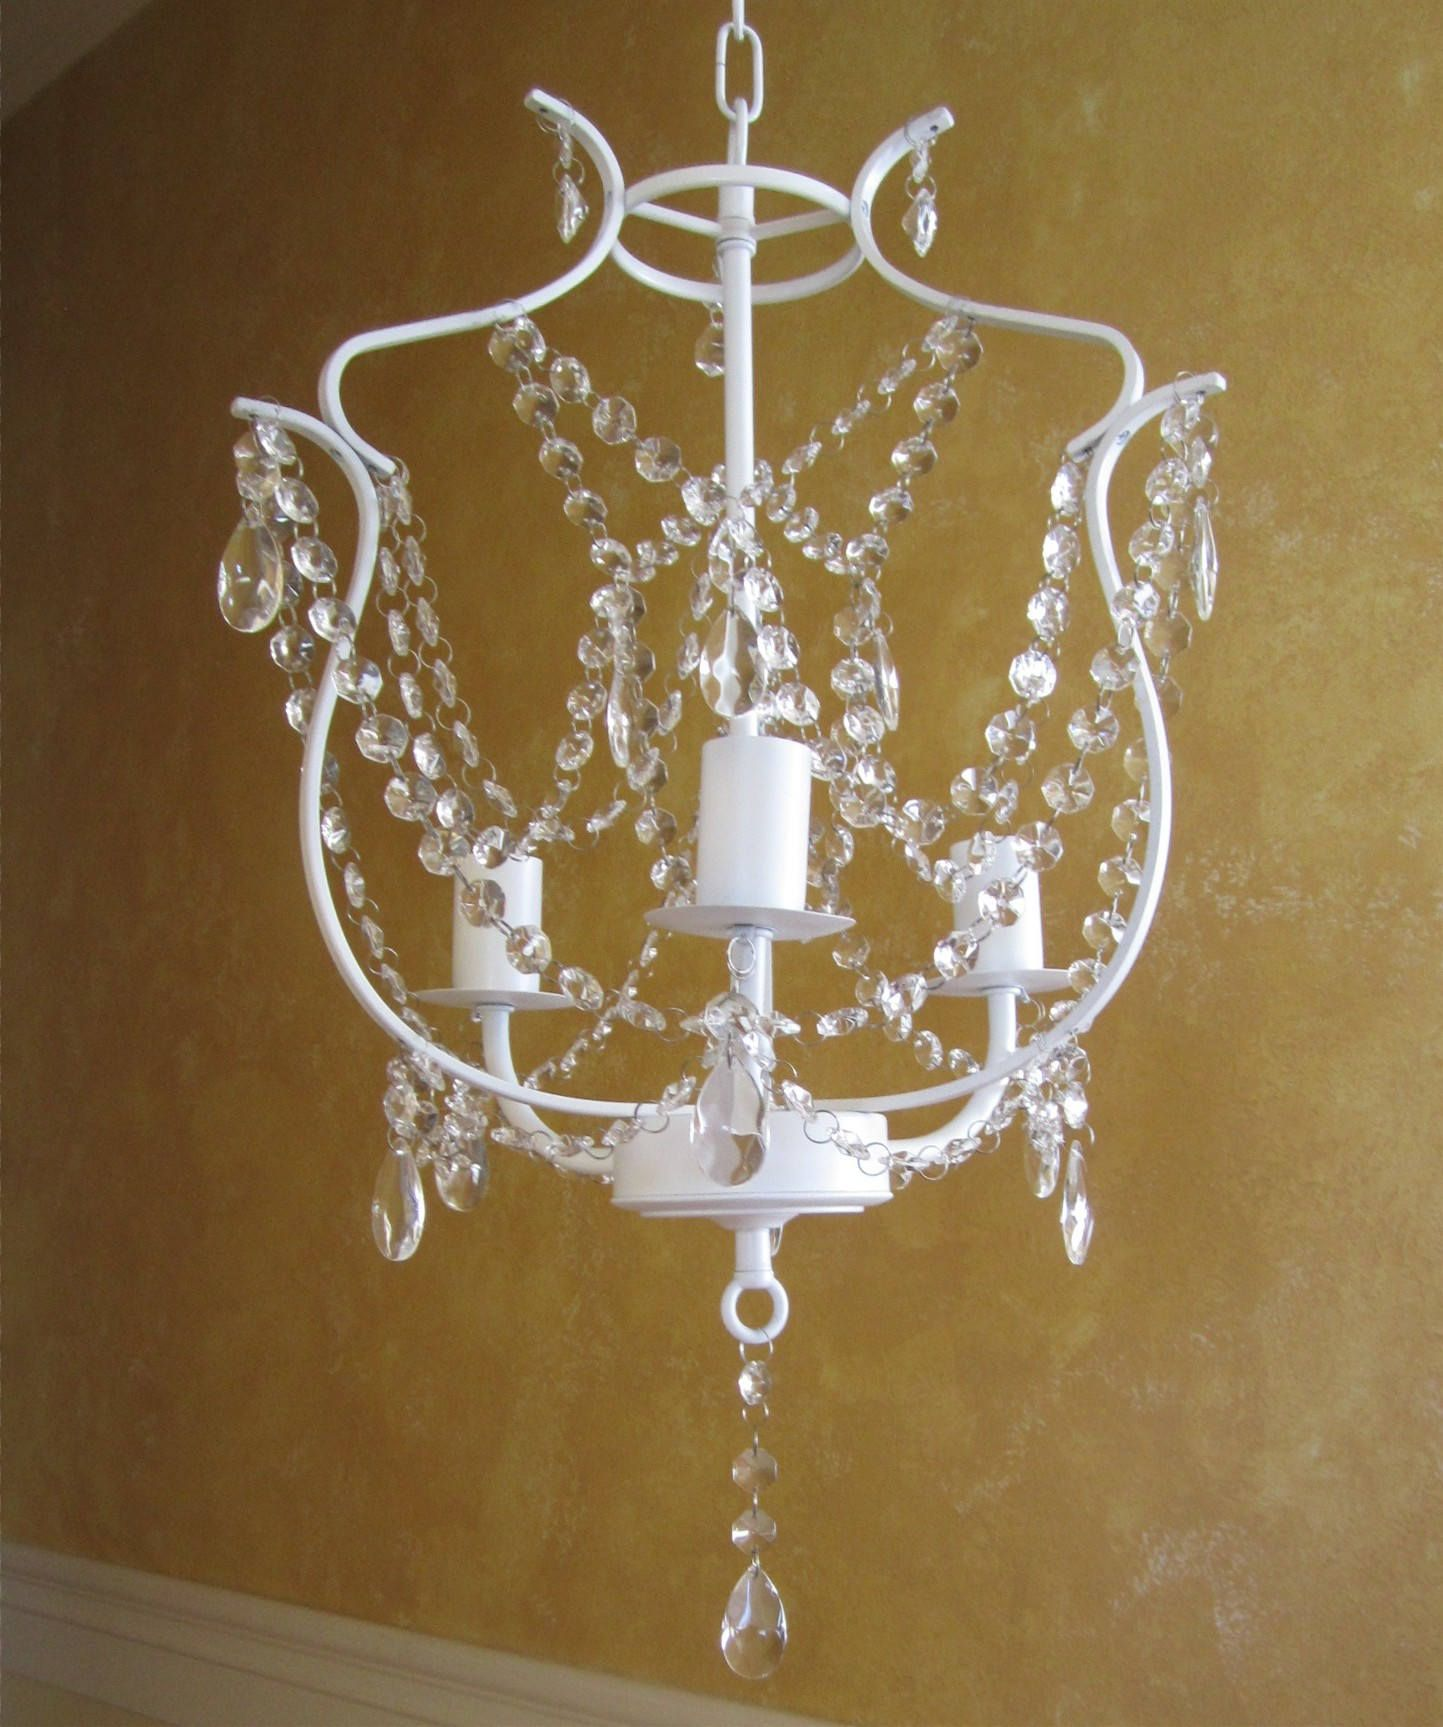 WHITE Hanging CHANDELIER CANDLE Holder Oak 3 arm White with